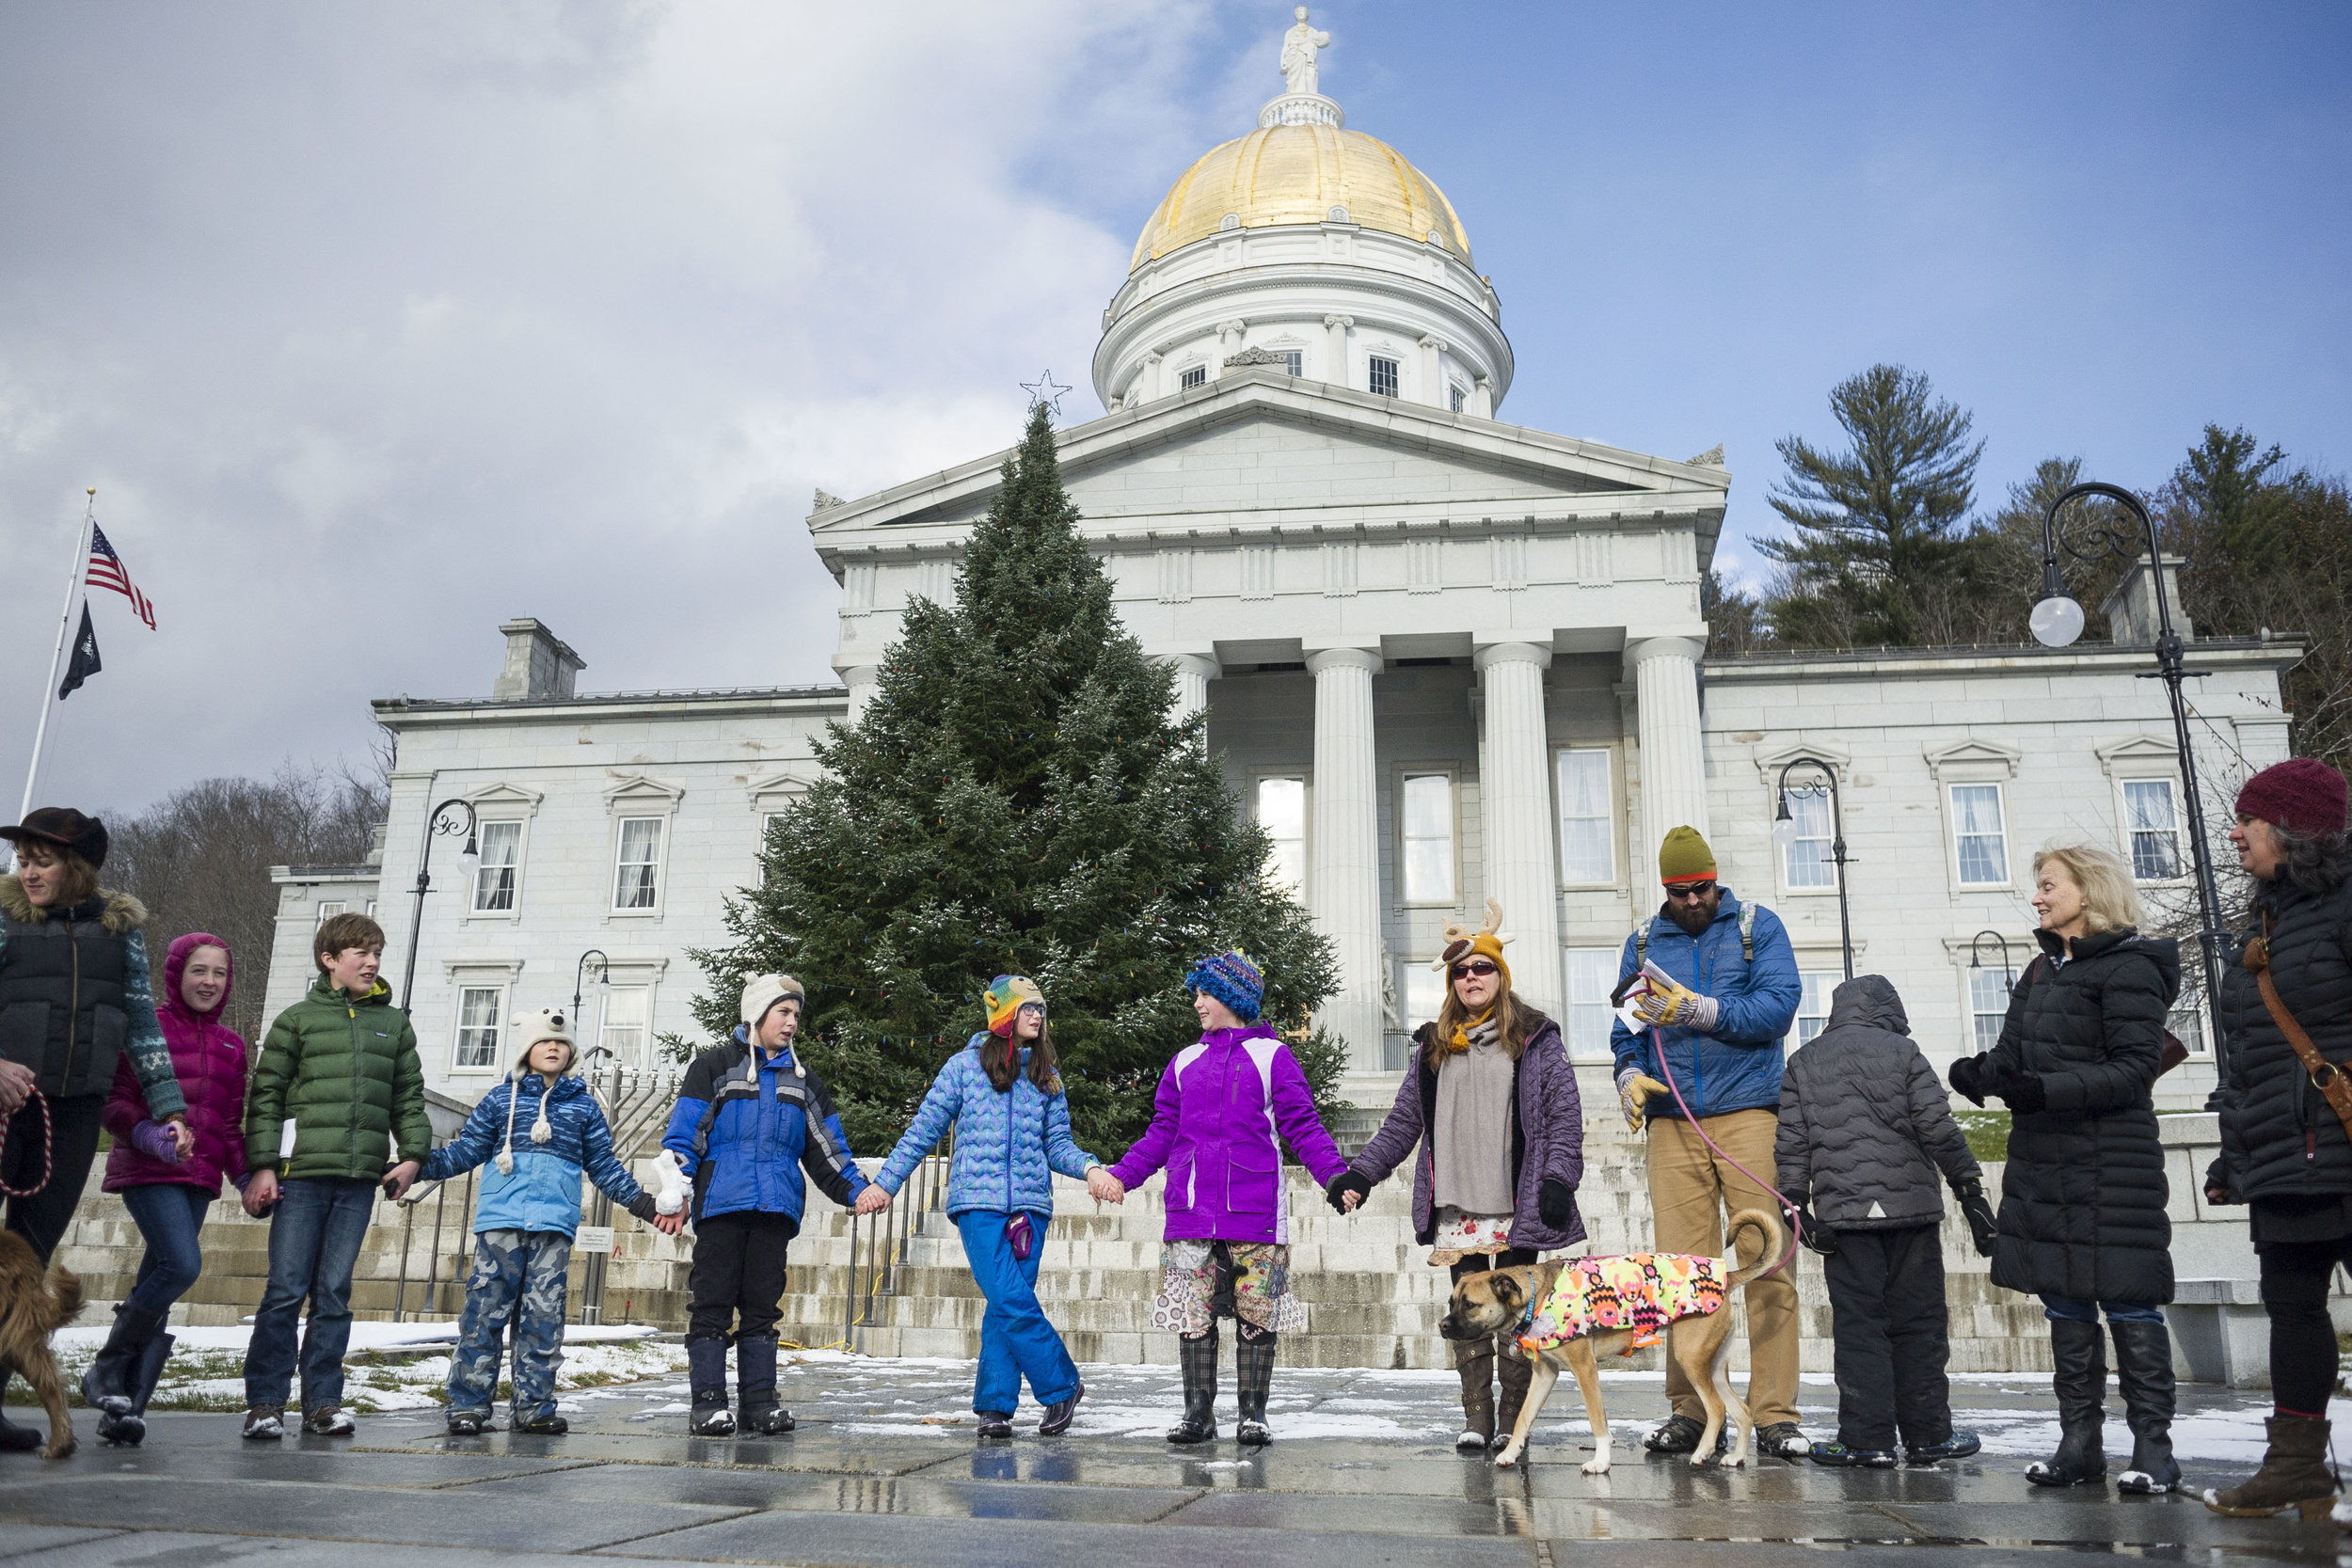 Elementary school students from Montpelier and Calais march from the Kellogg-Hubbard Library down State Street to the State House on Sunday, December 10th 2017. Students were protesting possible resource exploitation of the Alaskan Arctic National Wildlife Refuge included in the U.S. Senate tax bill.